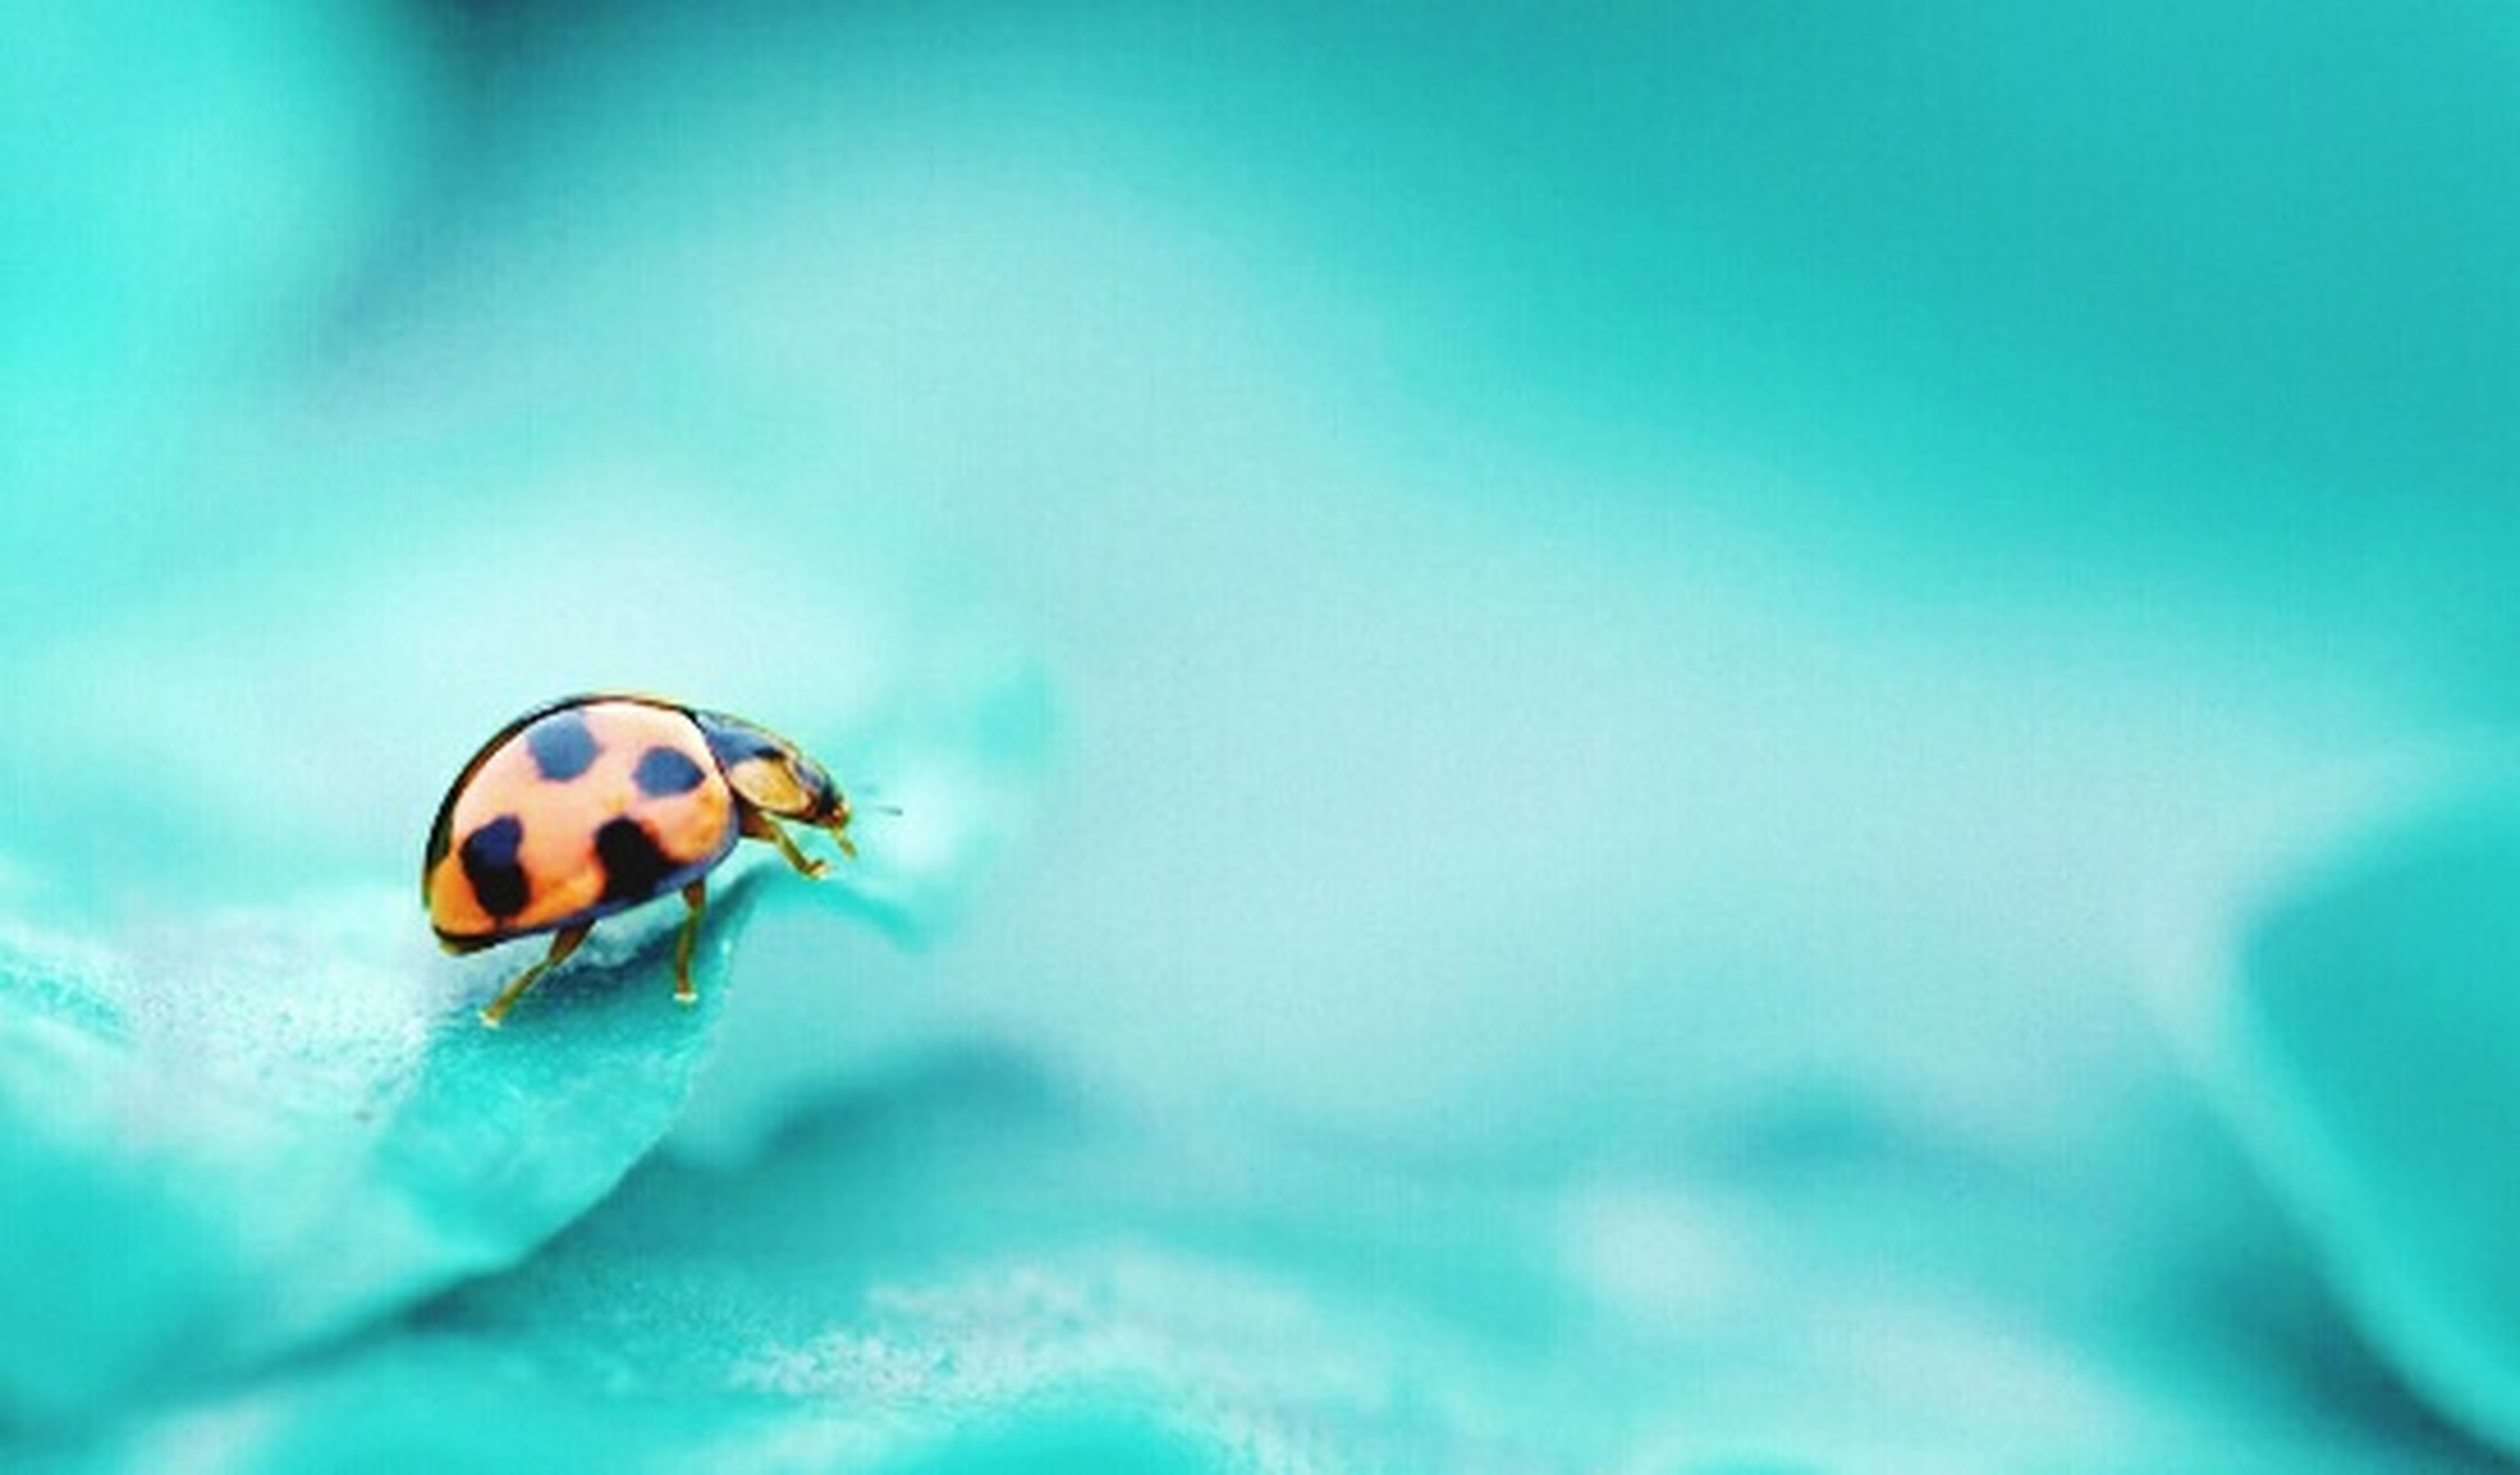 insect, one animal, animal themes, animals in the wild, wildlife, blue, close-up, selective focus, ladybug, nature, zoology, focus on foreground, day, beauty in nature, outdoors, full length, no people, beetle, arthropod, two animals